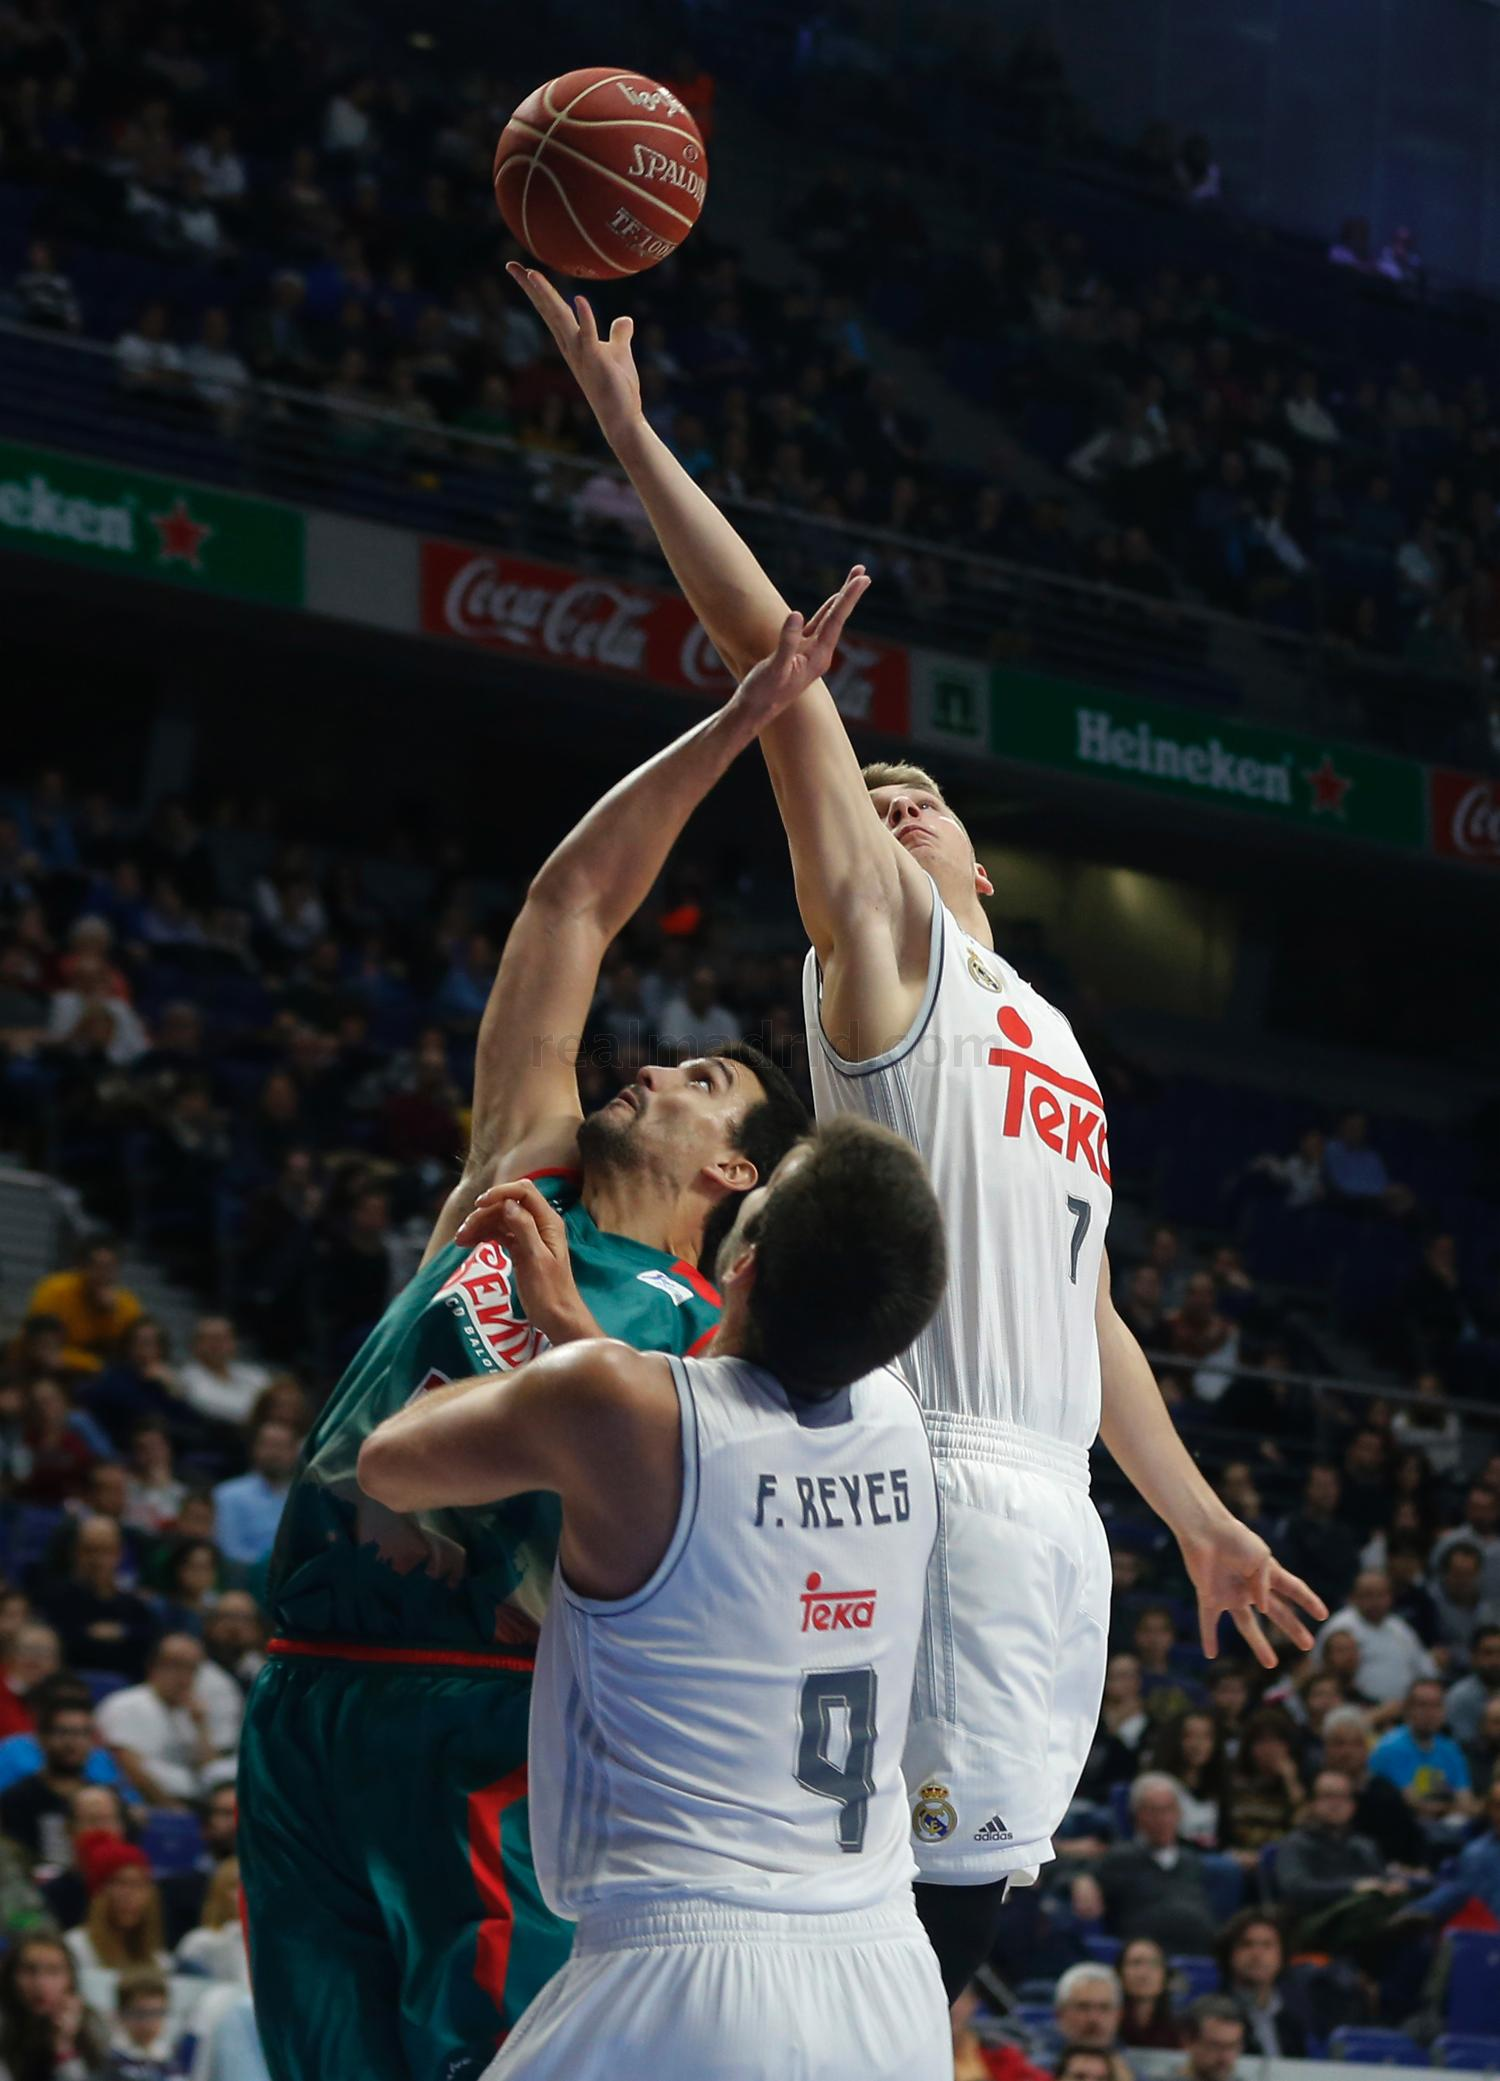 Real Madrid - Real Madrid - Baloncesto Sevilla - 10-01-2016